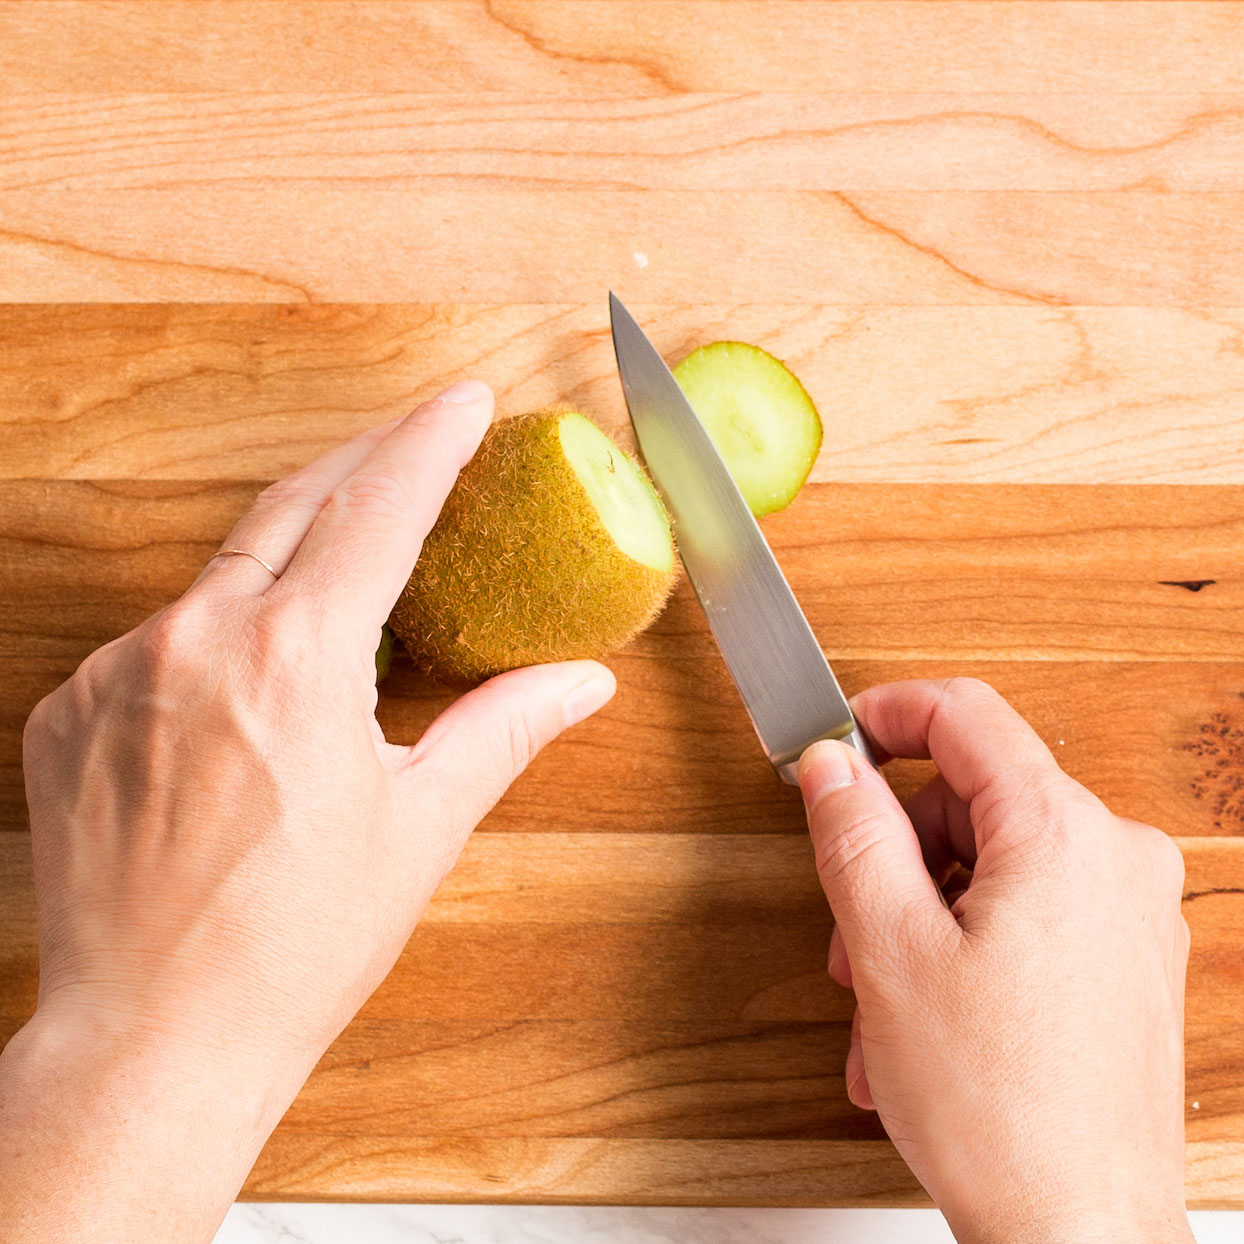 cutting the end off of a kiwi with a paring knife